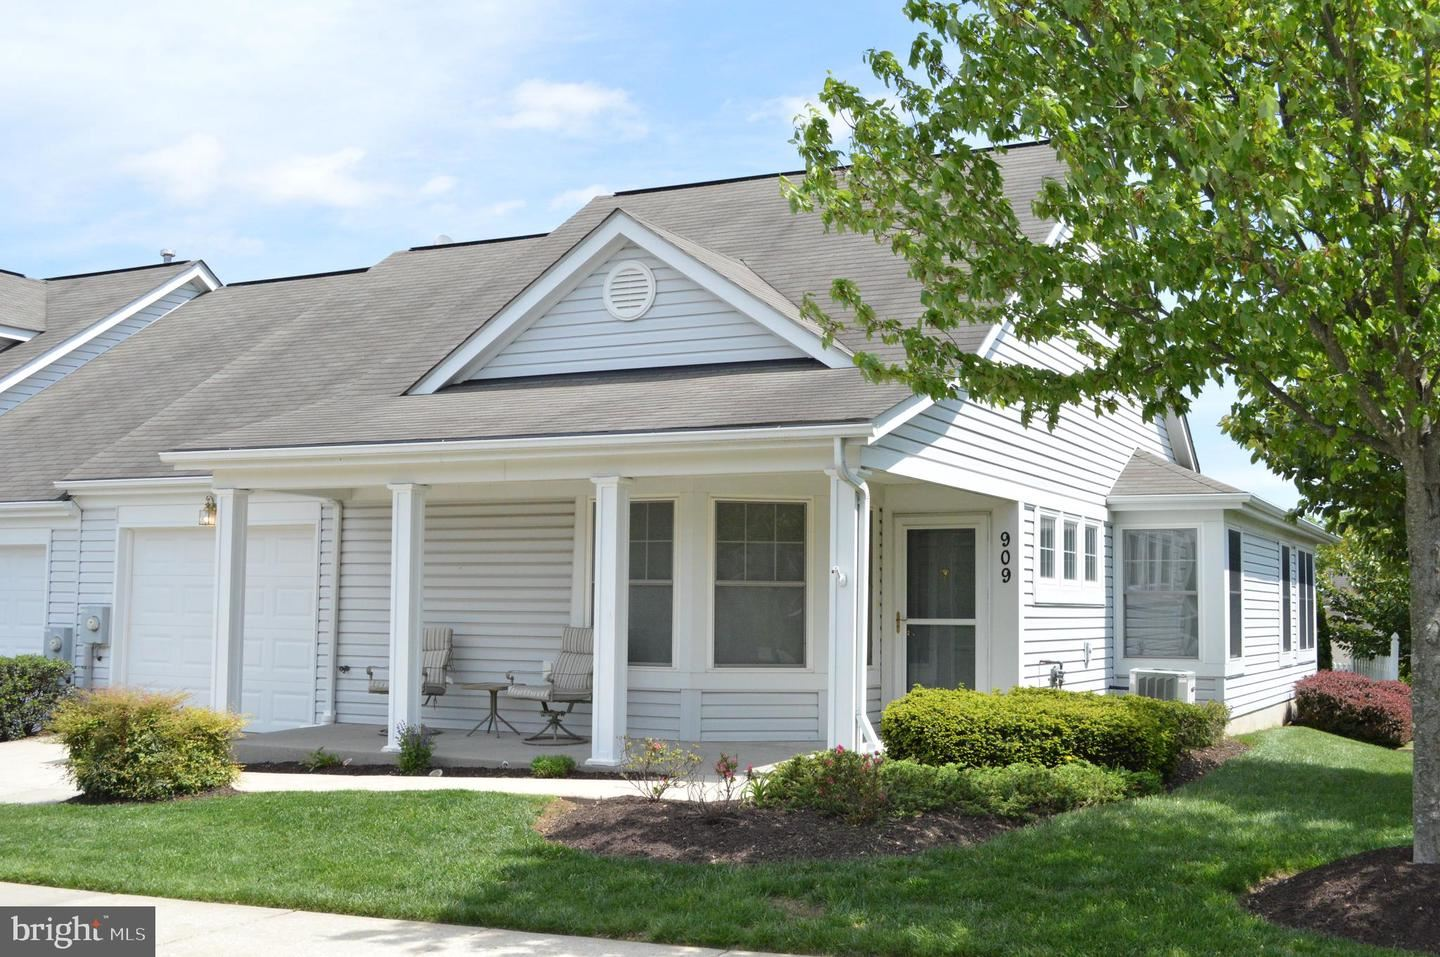 909 CANDY APPLE AVE, Mount Airy, MD 21771 - MLS#: MDCR204396